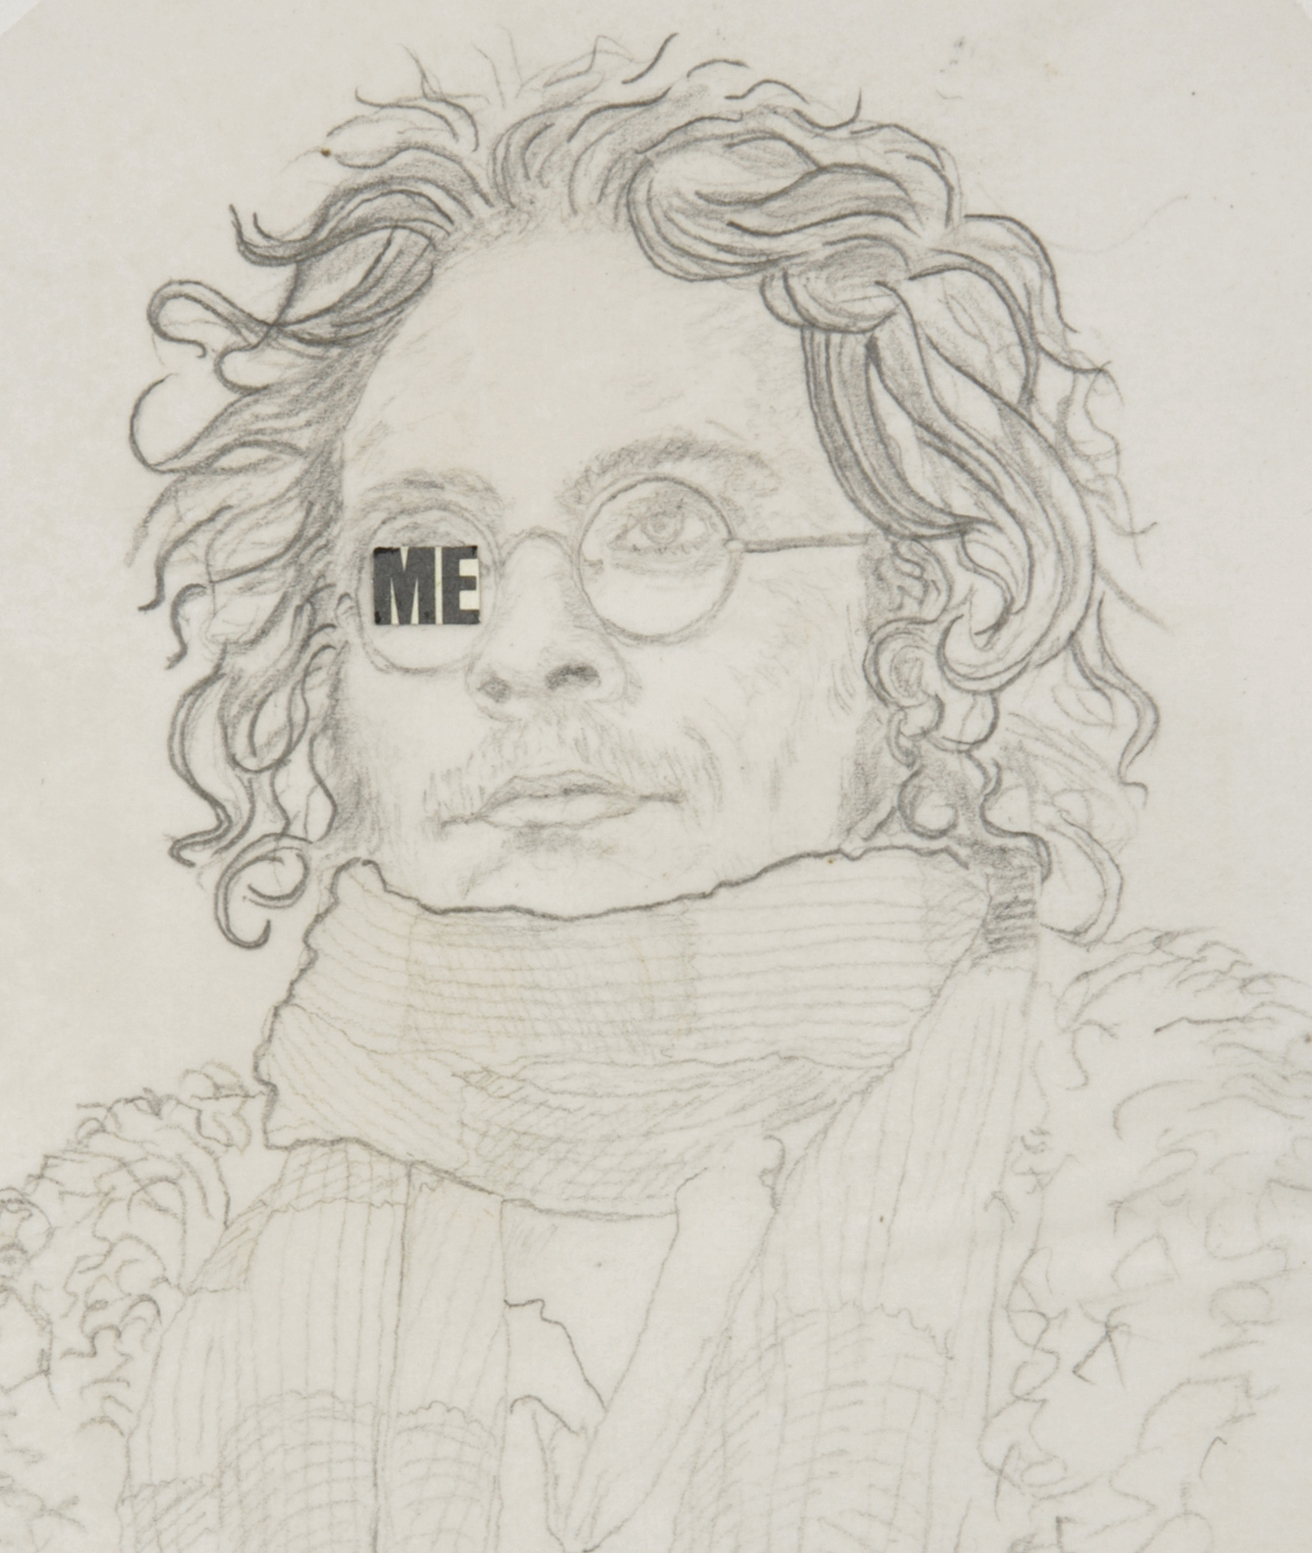 Self -portrait, c1965. Detail from notebook